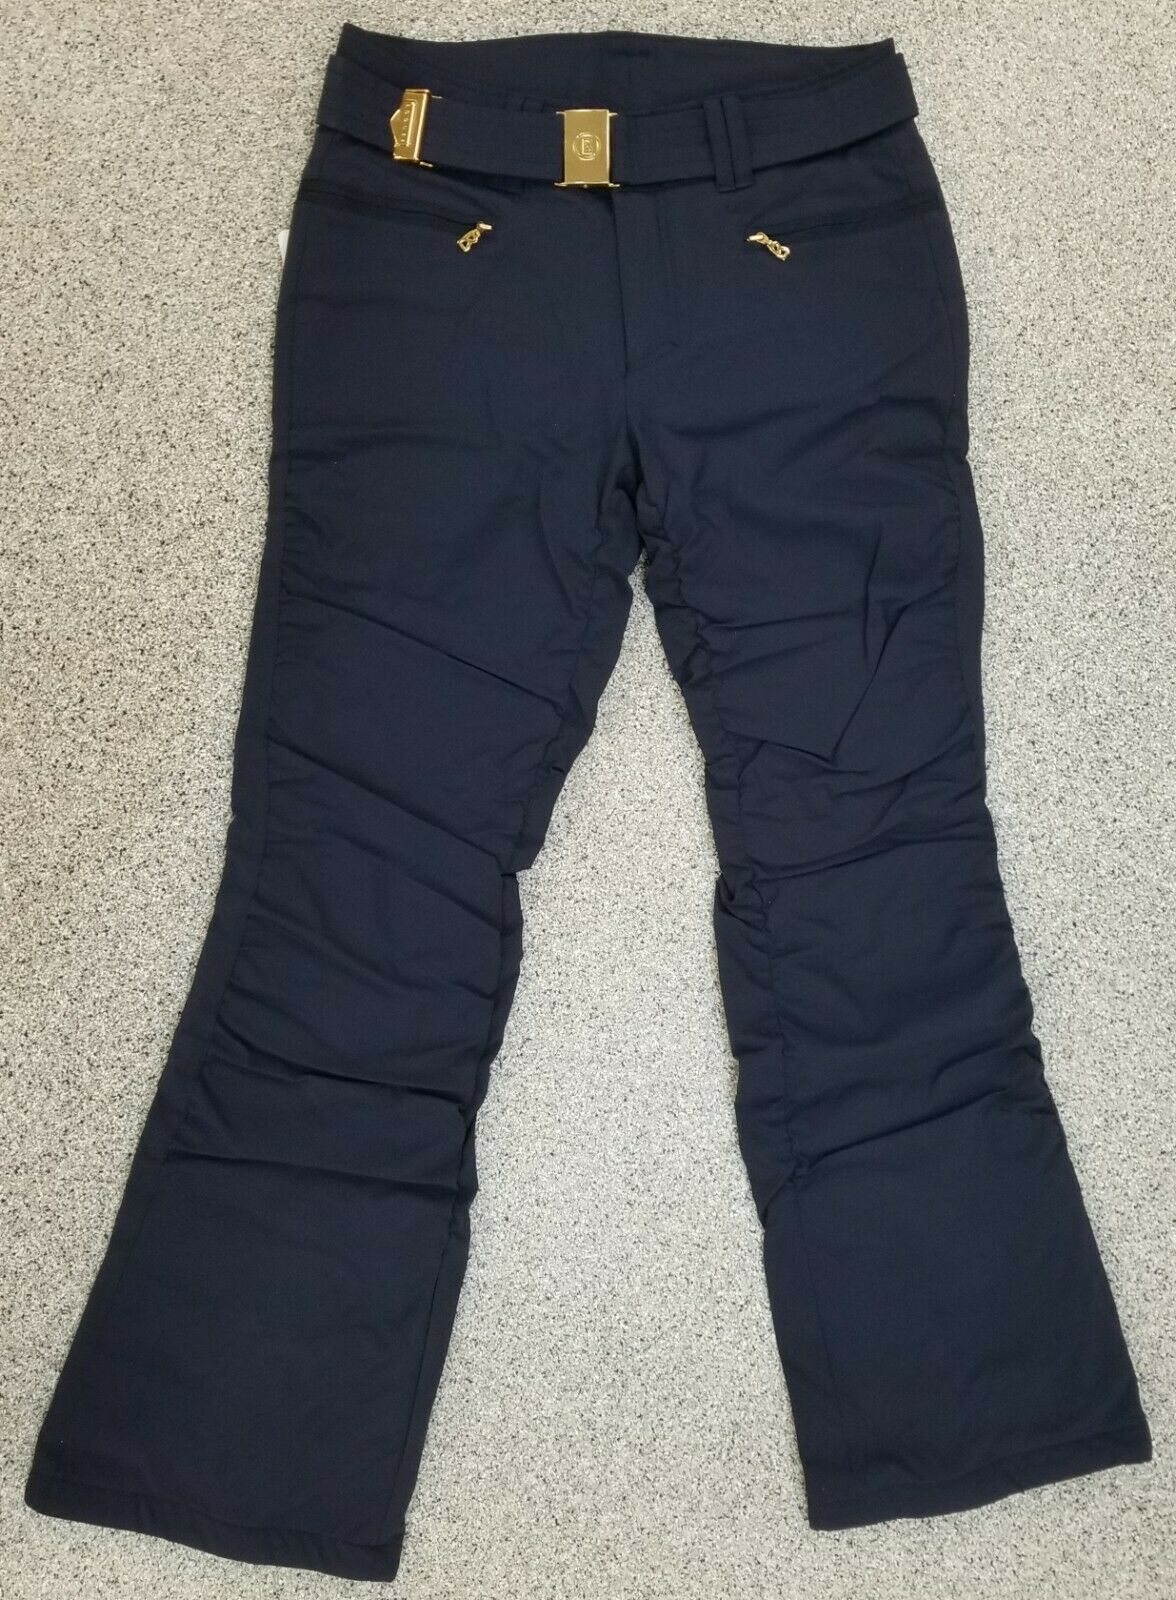 New $790 Bogner Luna Womens Ski Pants Navy Blue Size 12 Ladi